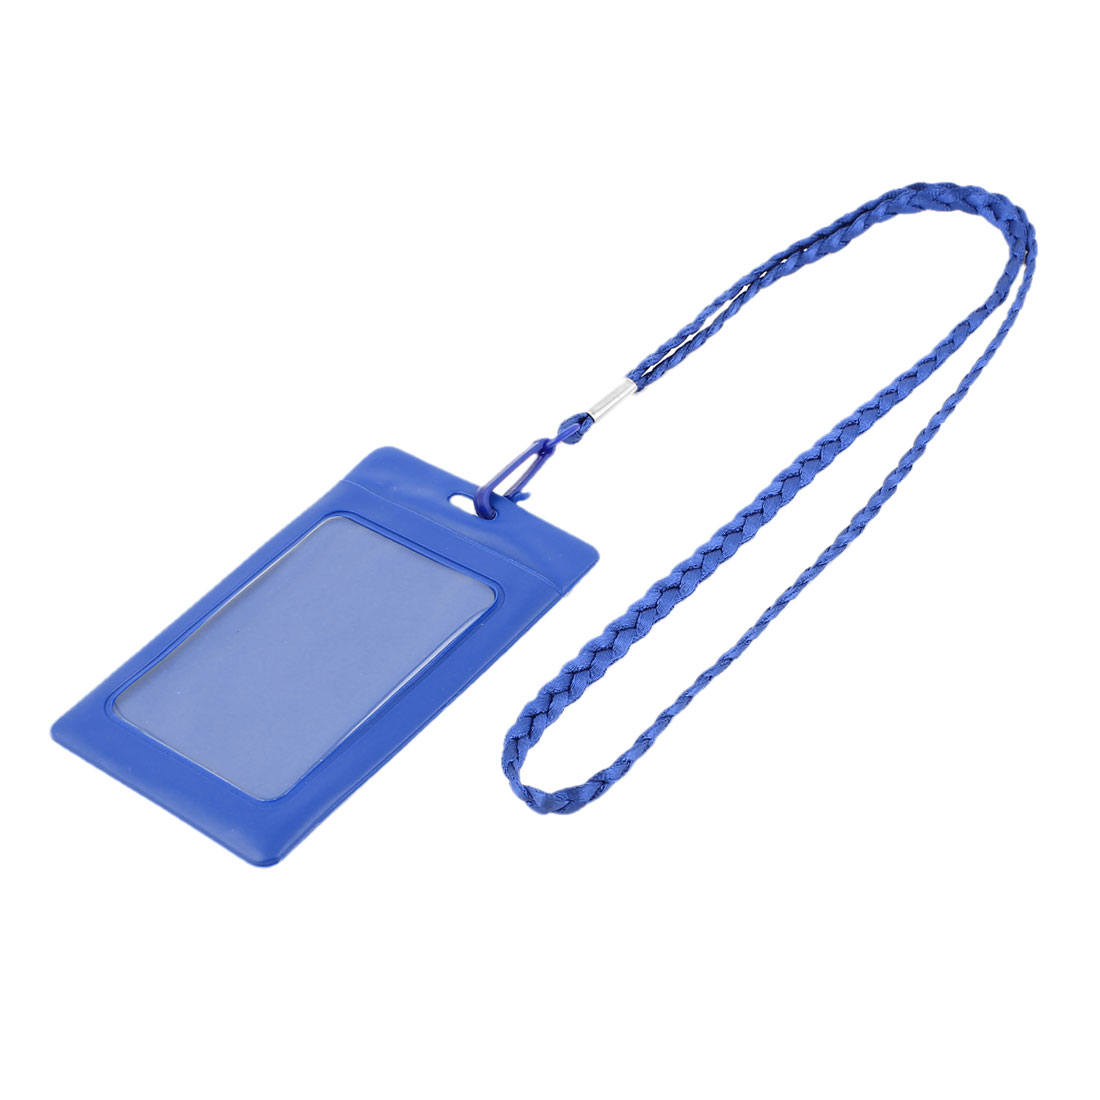 Plastic Vertical Style Lanyard Neck Strap Business Work ID Card Holder Blue